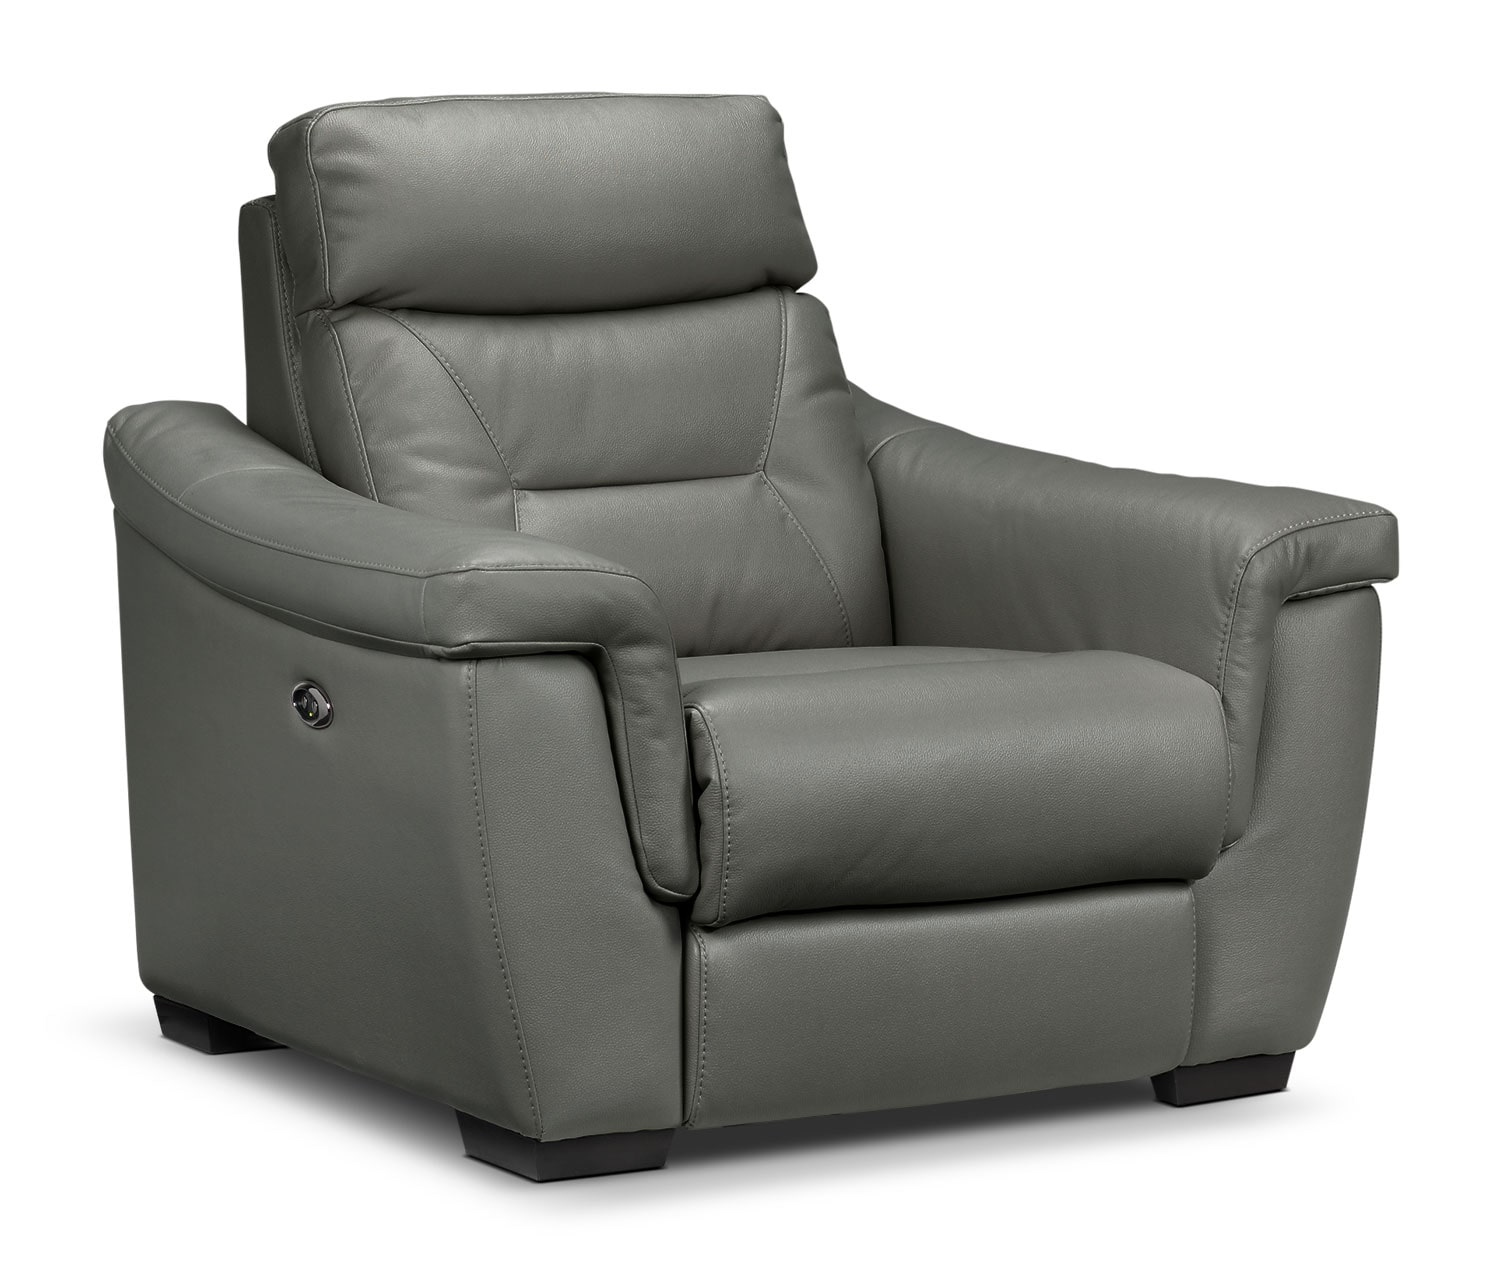 Living Room Furniture - Ralston Power Recliner - Graphite